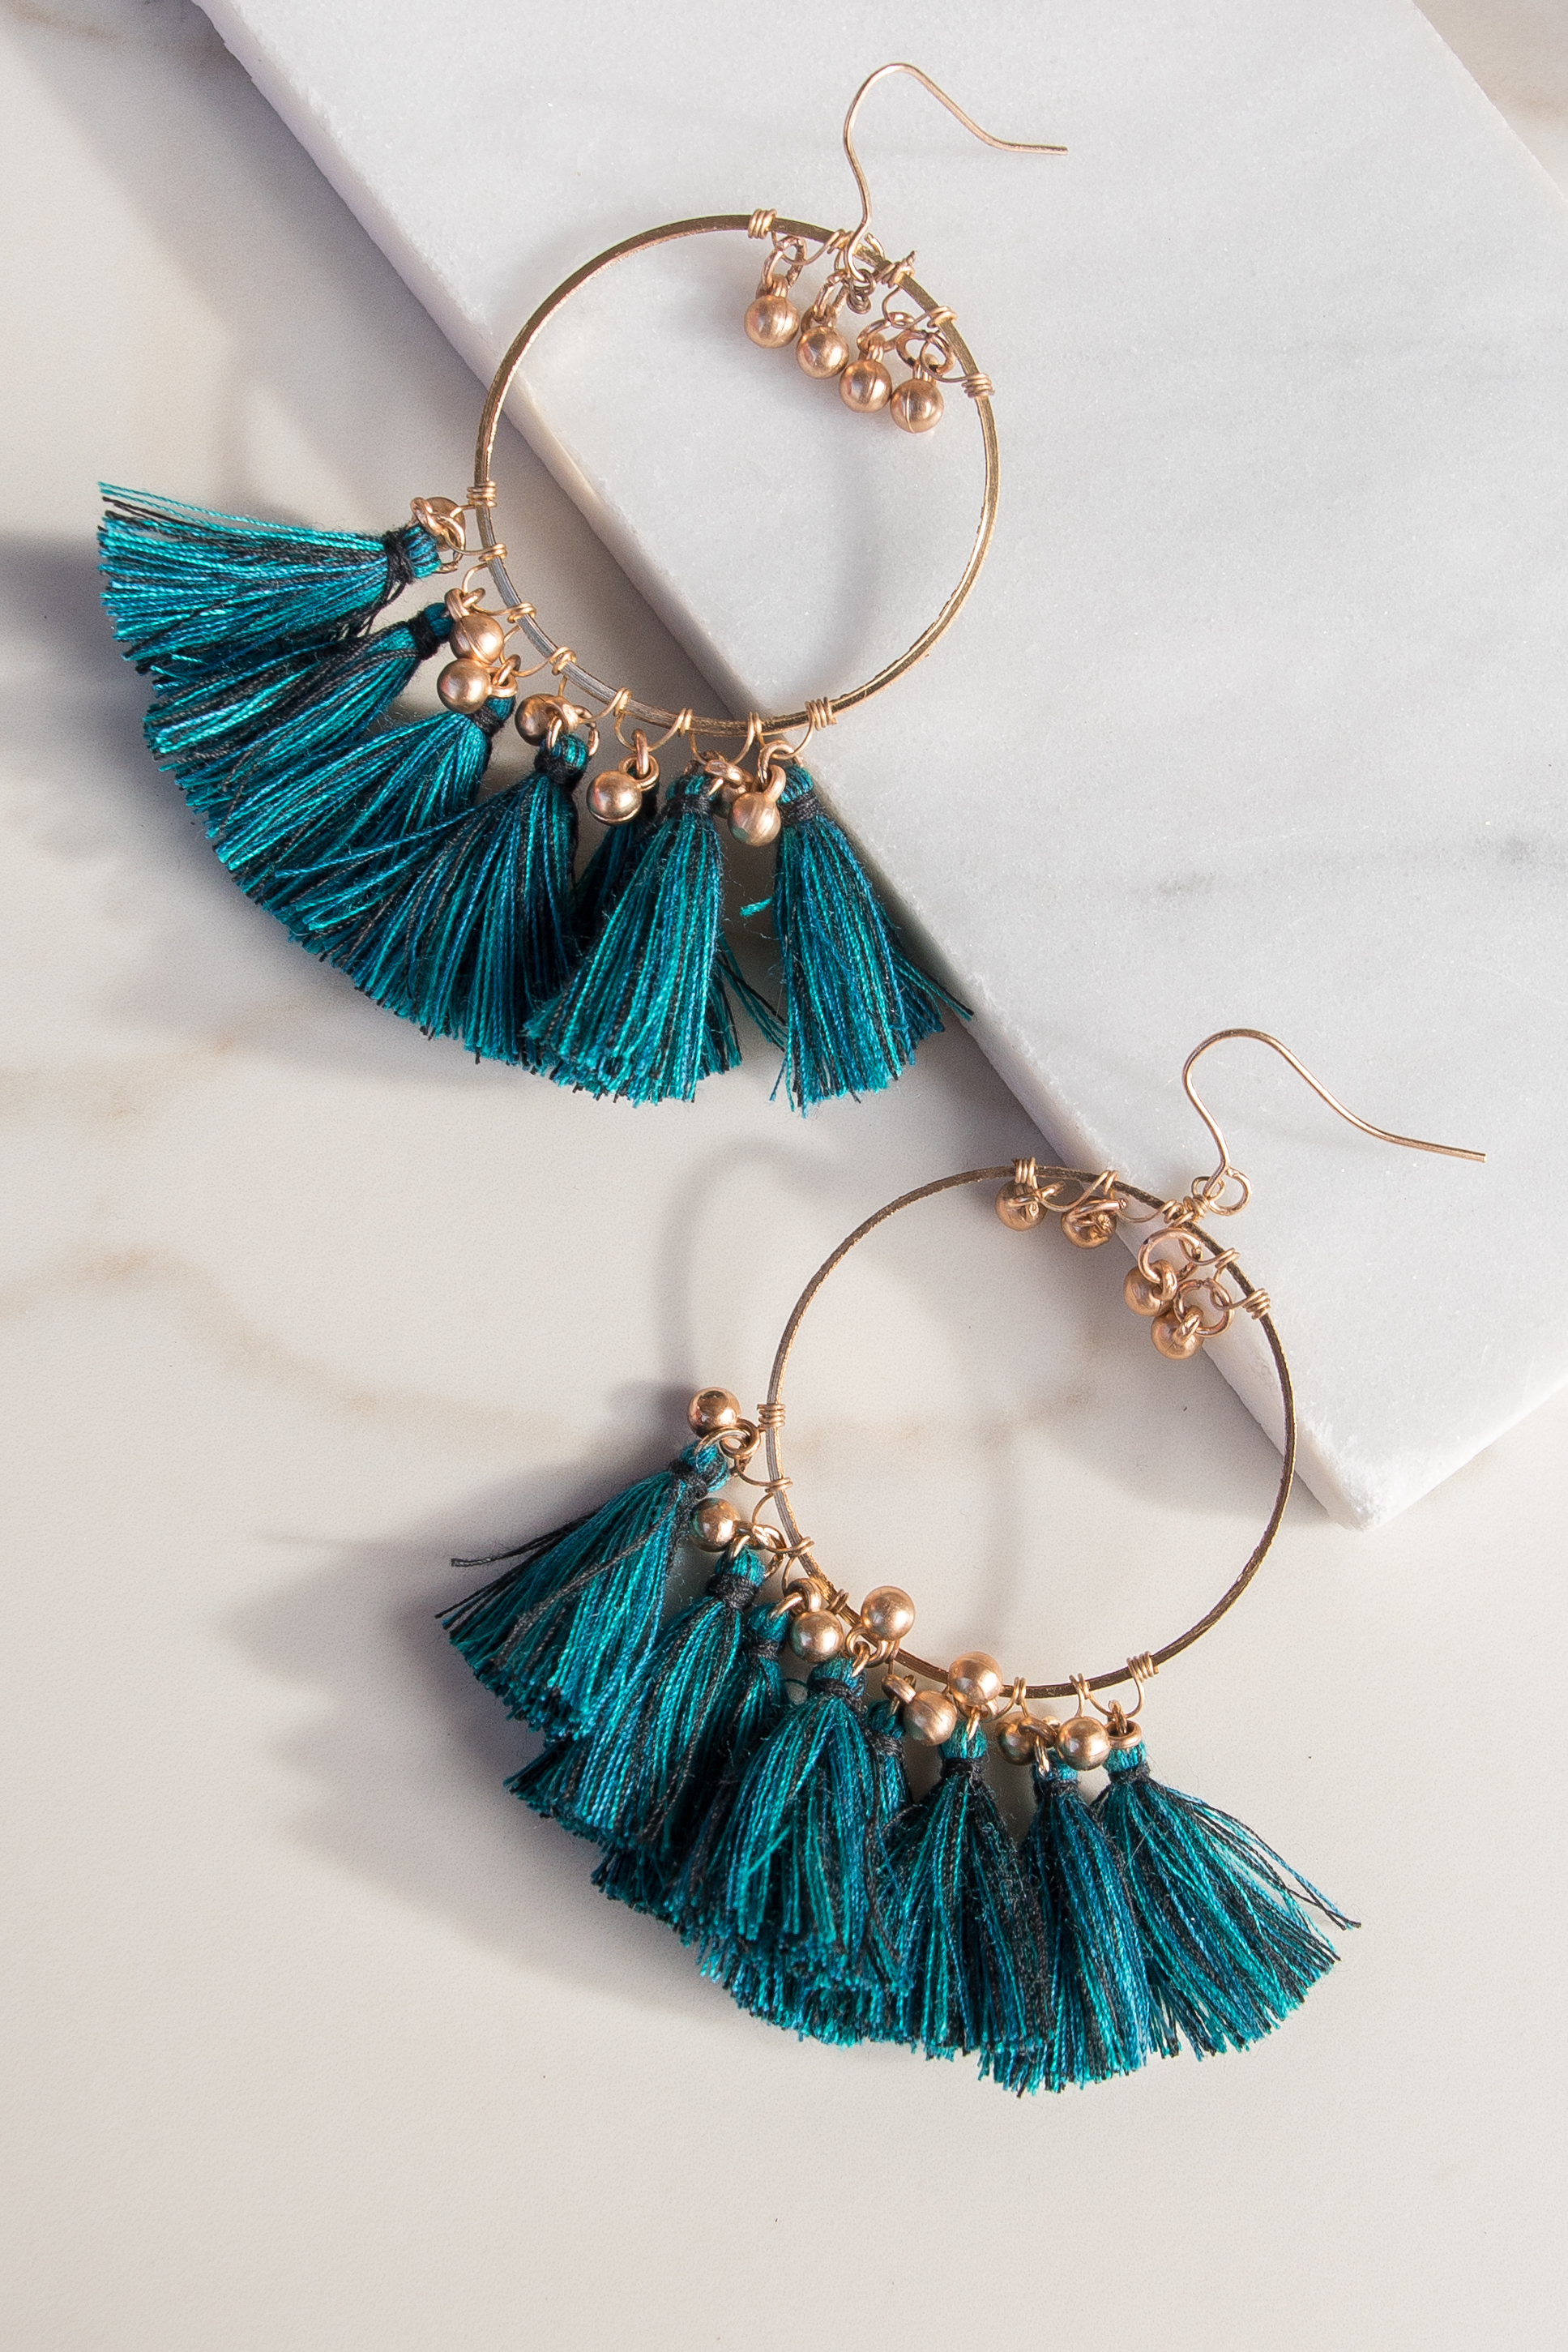 Gold Hoop Earrings with Teal Tassel Detail